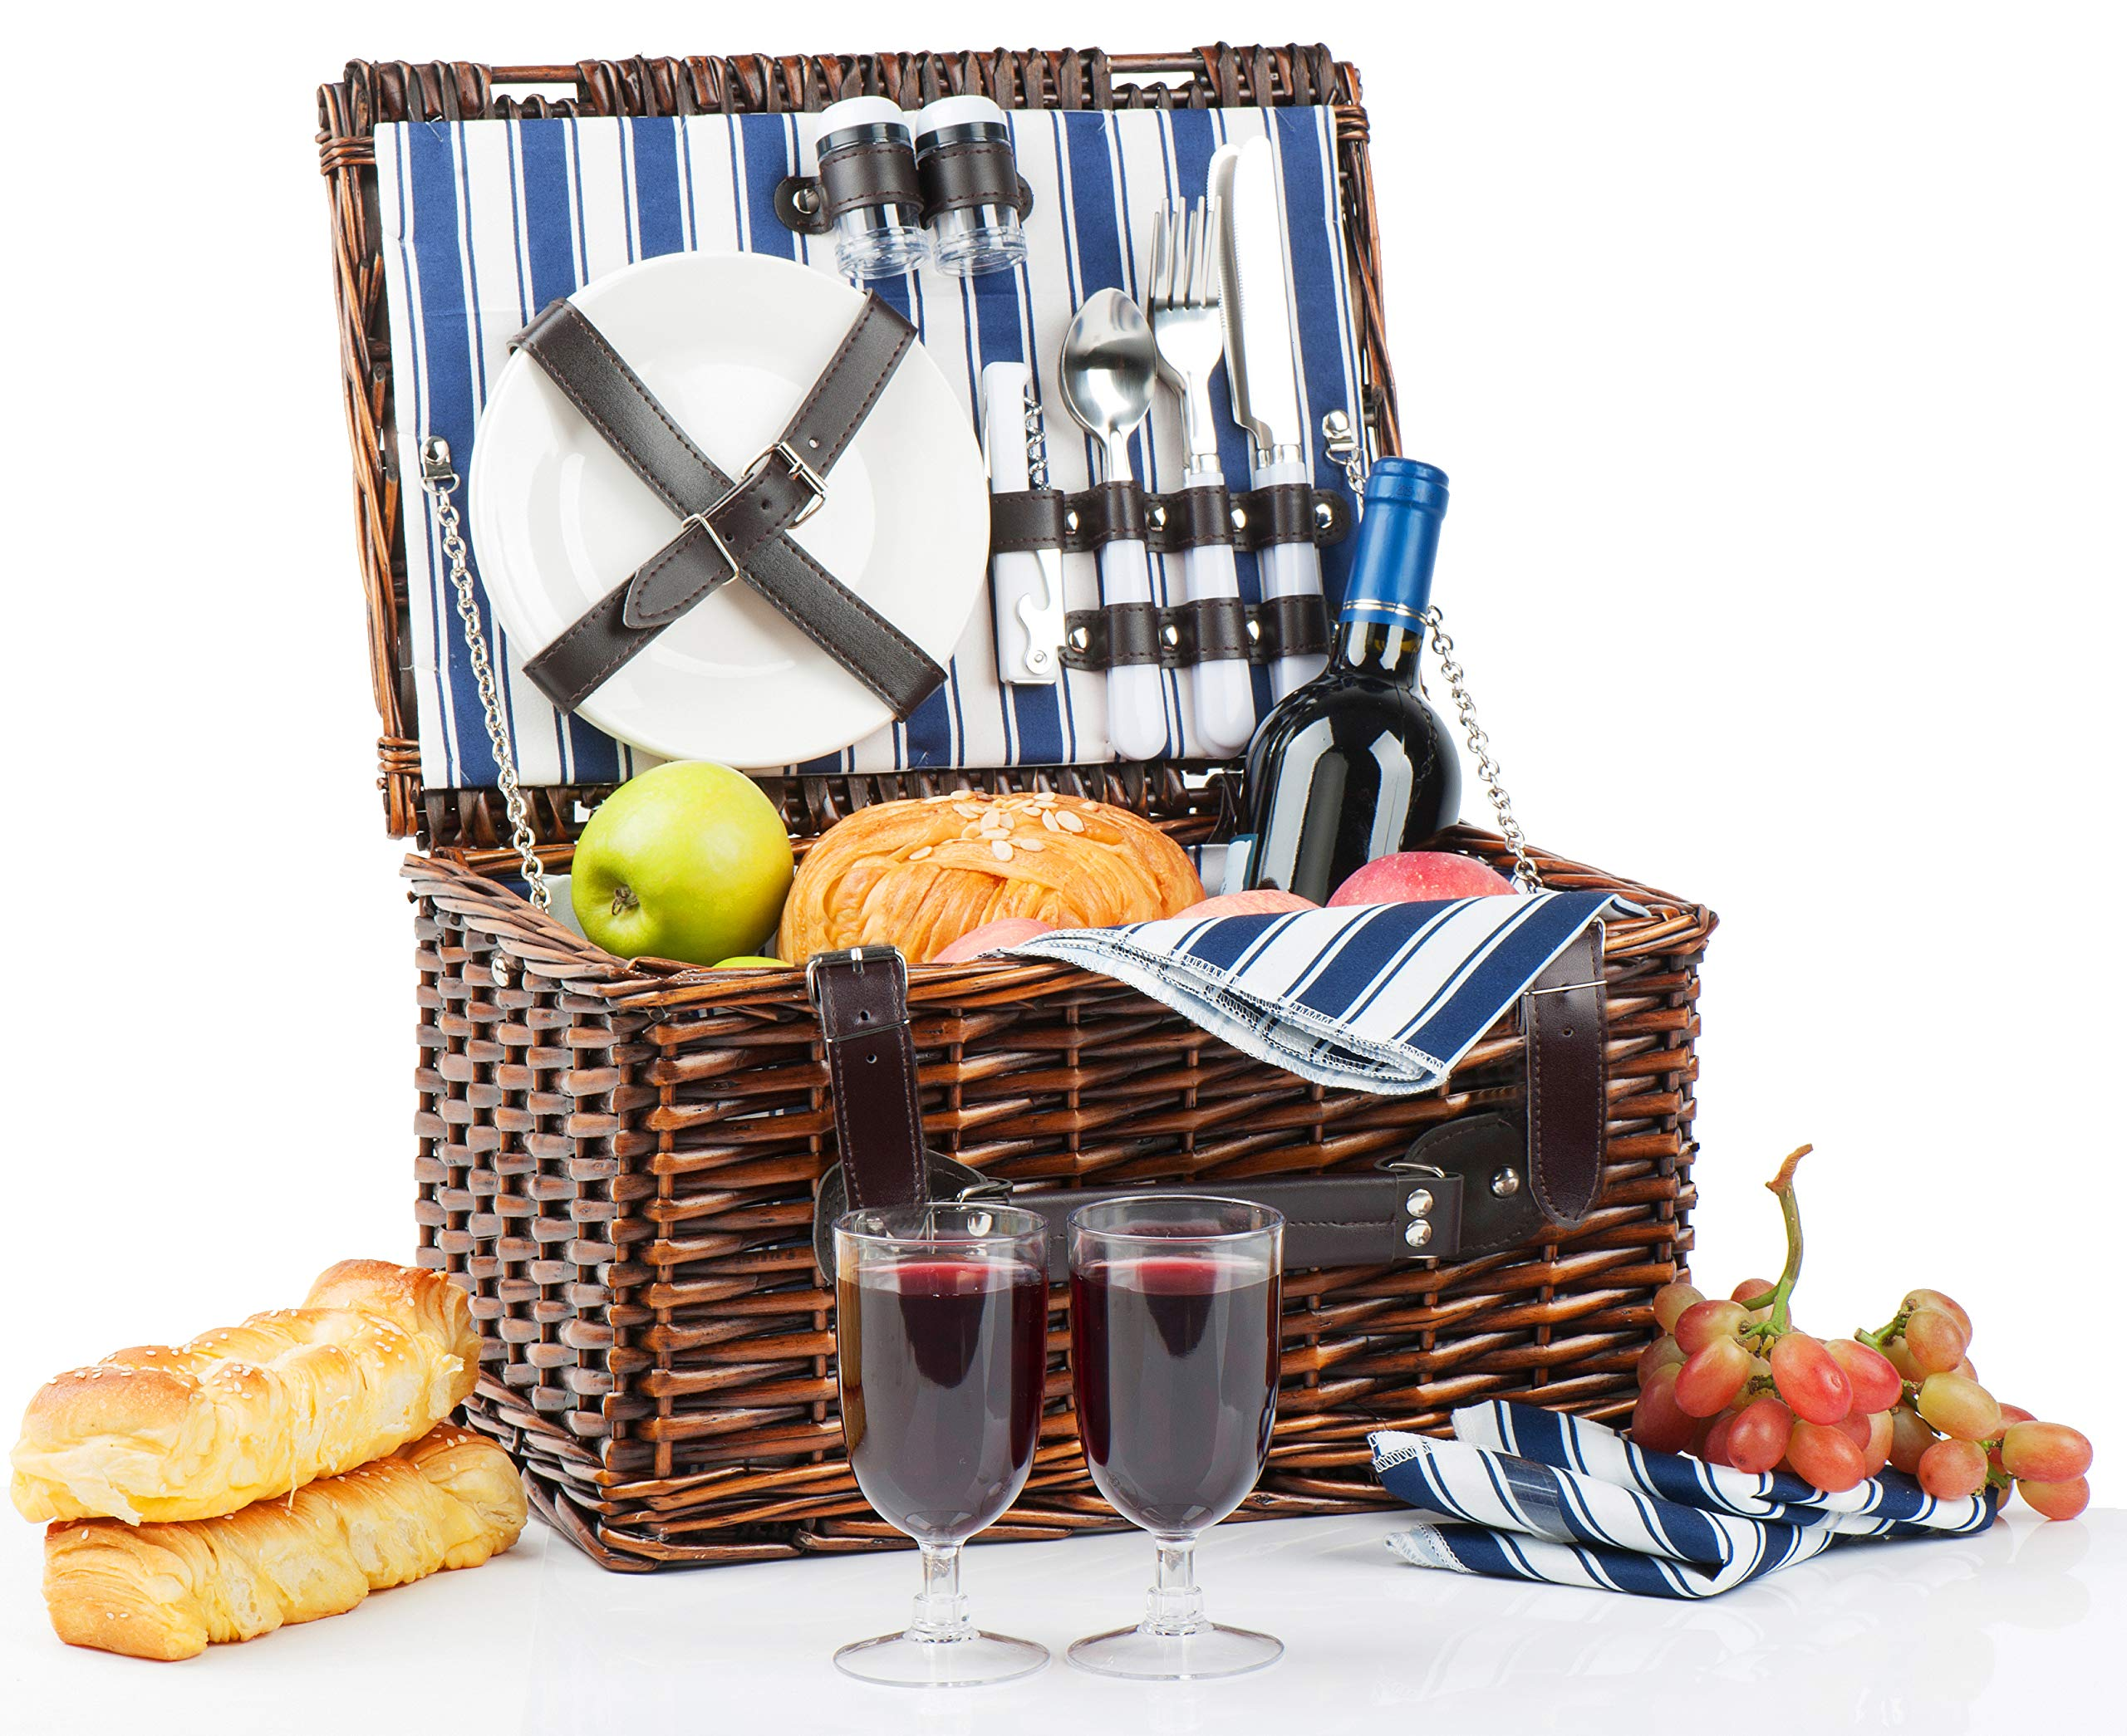 Picnic Basket for 2 | Handmade Picnic Hamper Set | Ceramic Plates Complete Kit Includes Metal Flatware Wine Glasses S/P Shakers and Bottle Opener | Blue Stripe Pattern Lining | Picnic Tote Wine Gifts by CALIFORNIA PICNIC